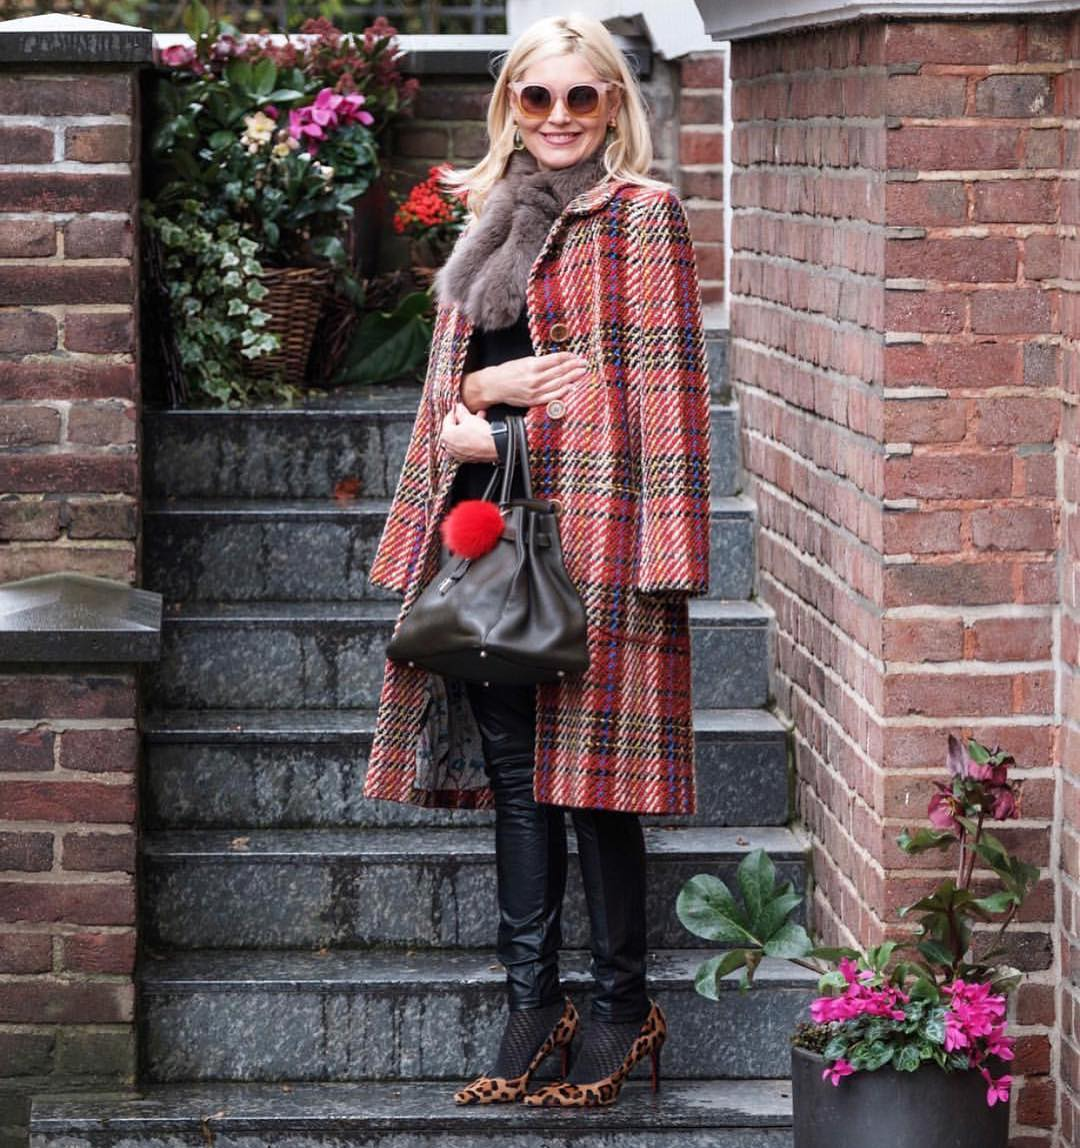 Perfect Fall Look For Weekends: Plaid Coat And Leopard Pumps 2020